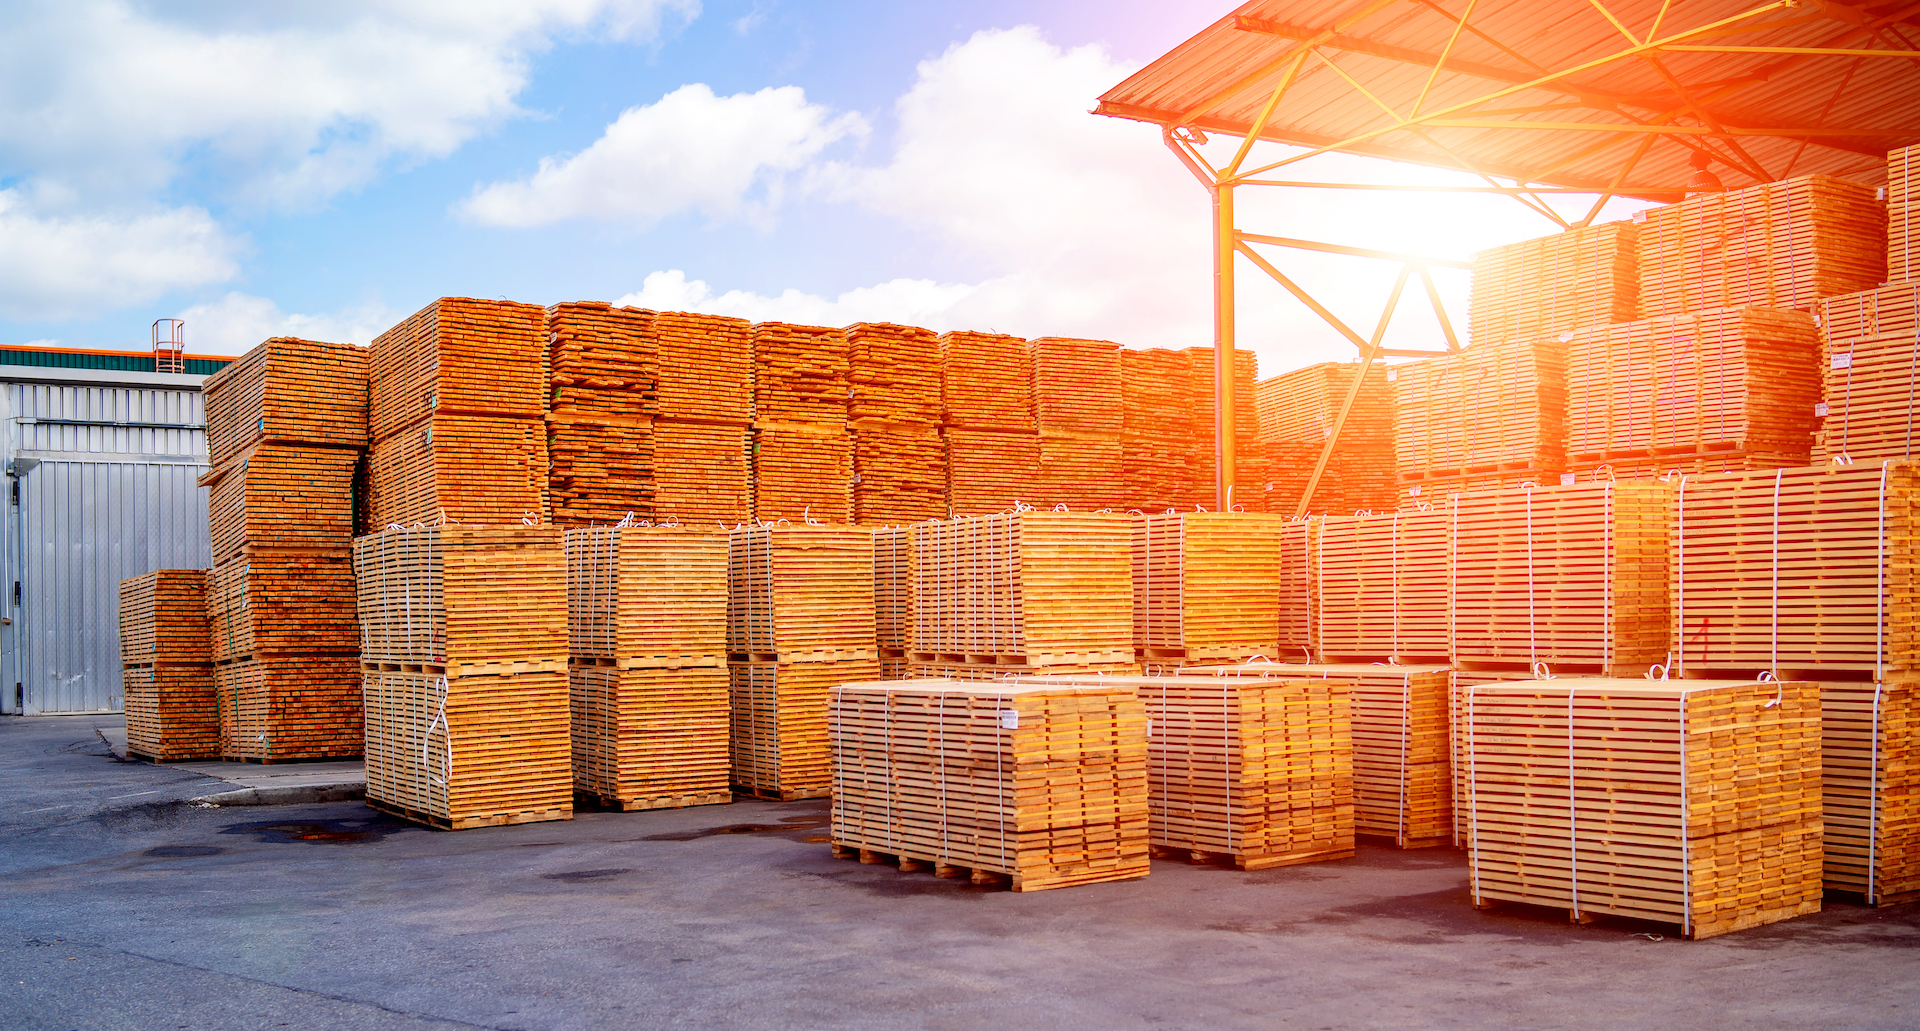 Warehouse interior, pallets with goods. Open-air. Transportation and logistic.